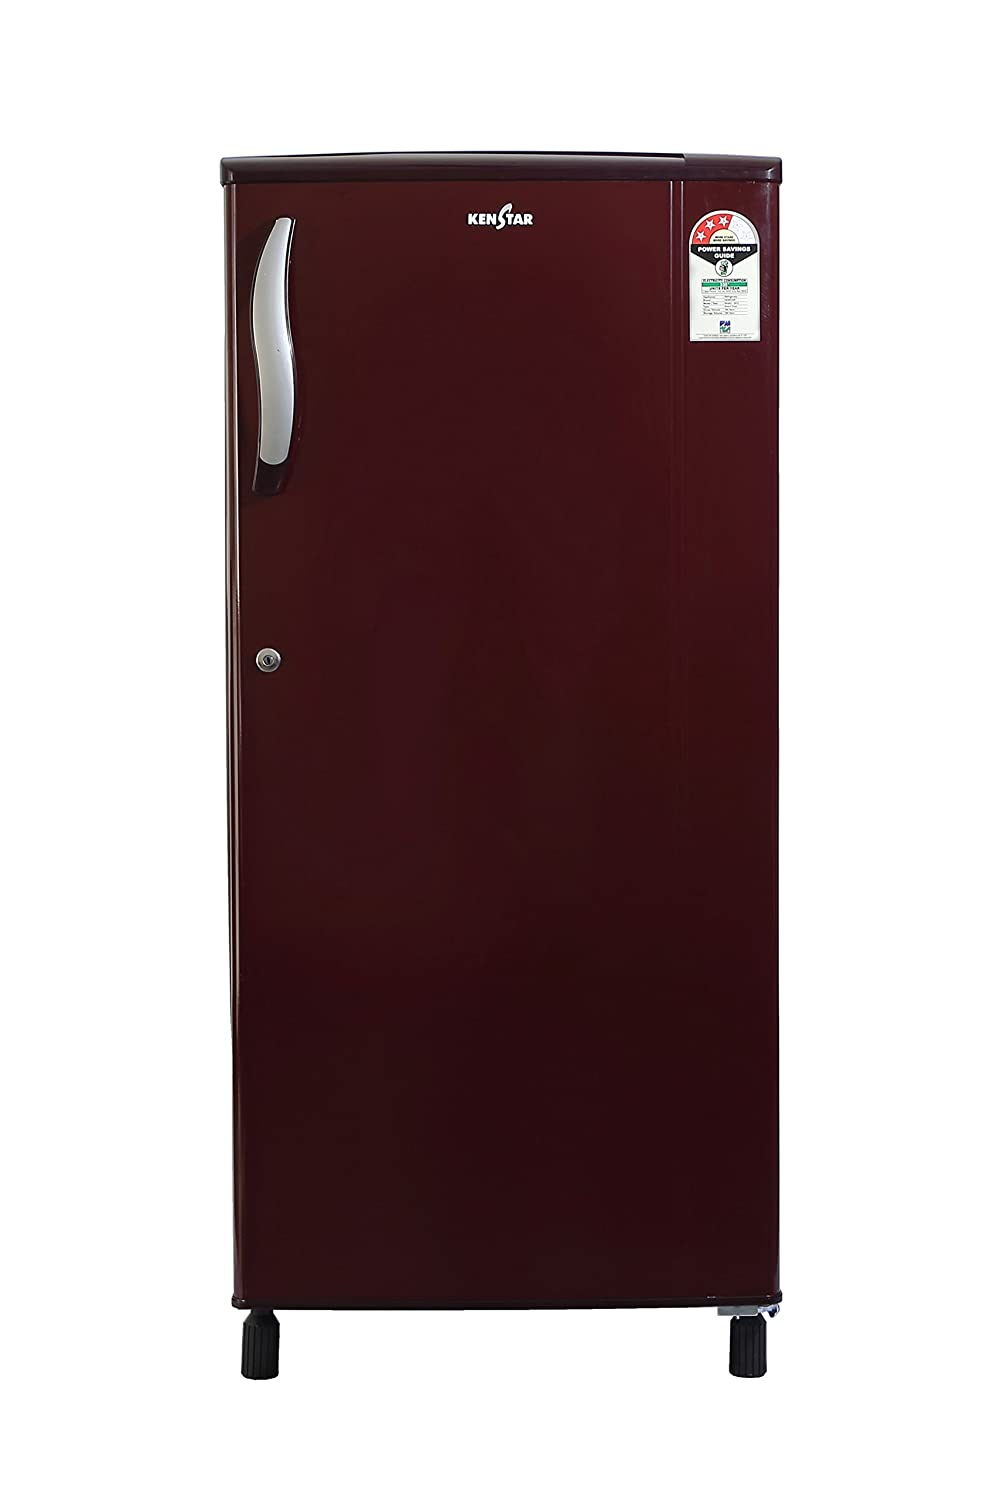 Kenstar NH203EBR-FDA Direct-cool Single-door Refrigerator (190 Ltrs, 3 Star Rating, Burgundy Red)